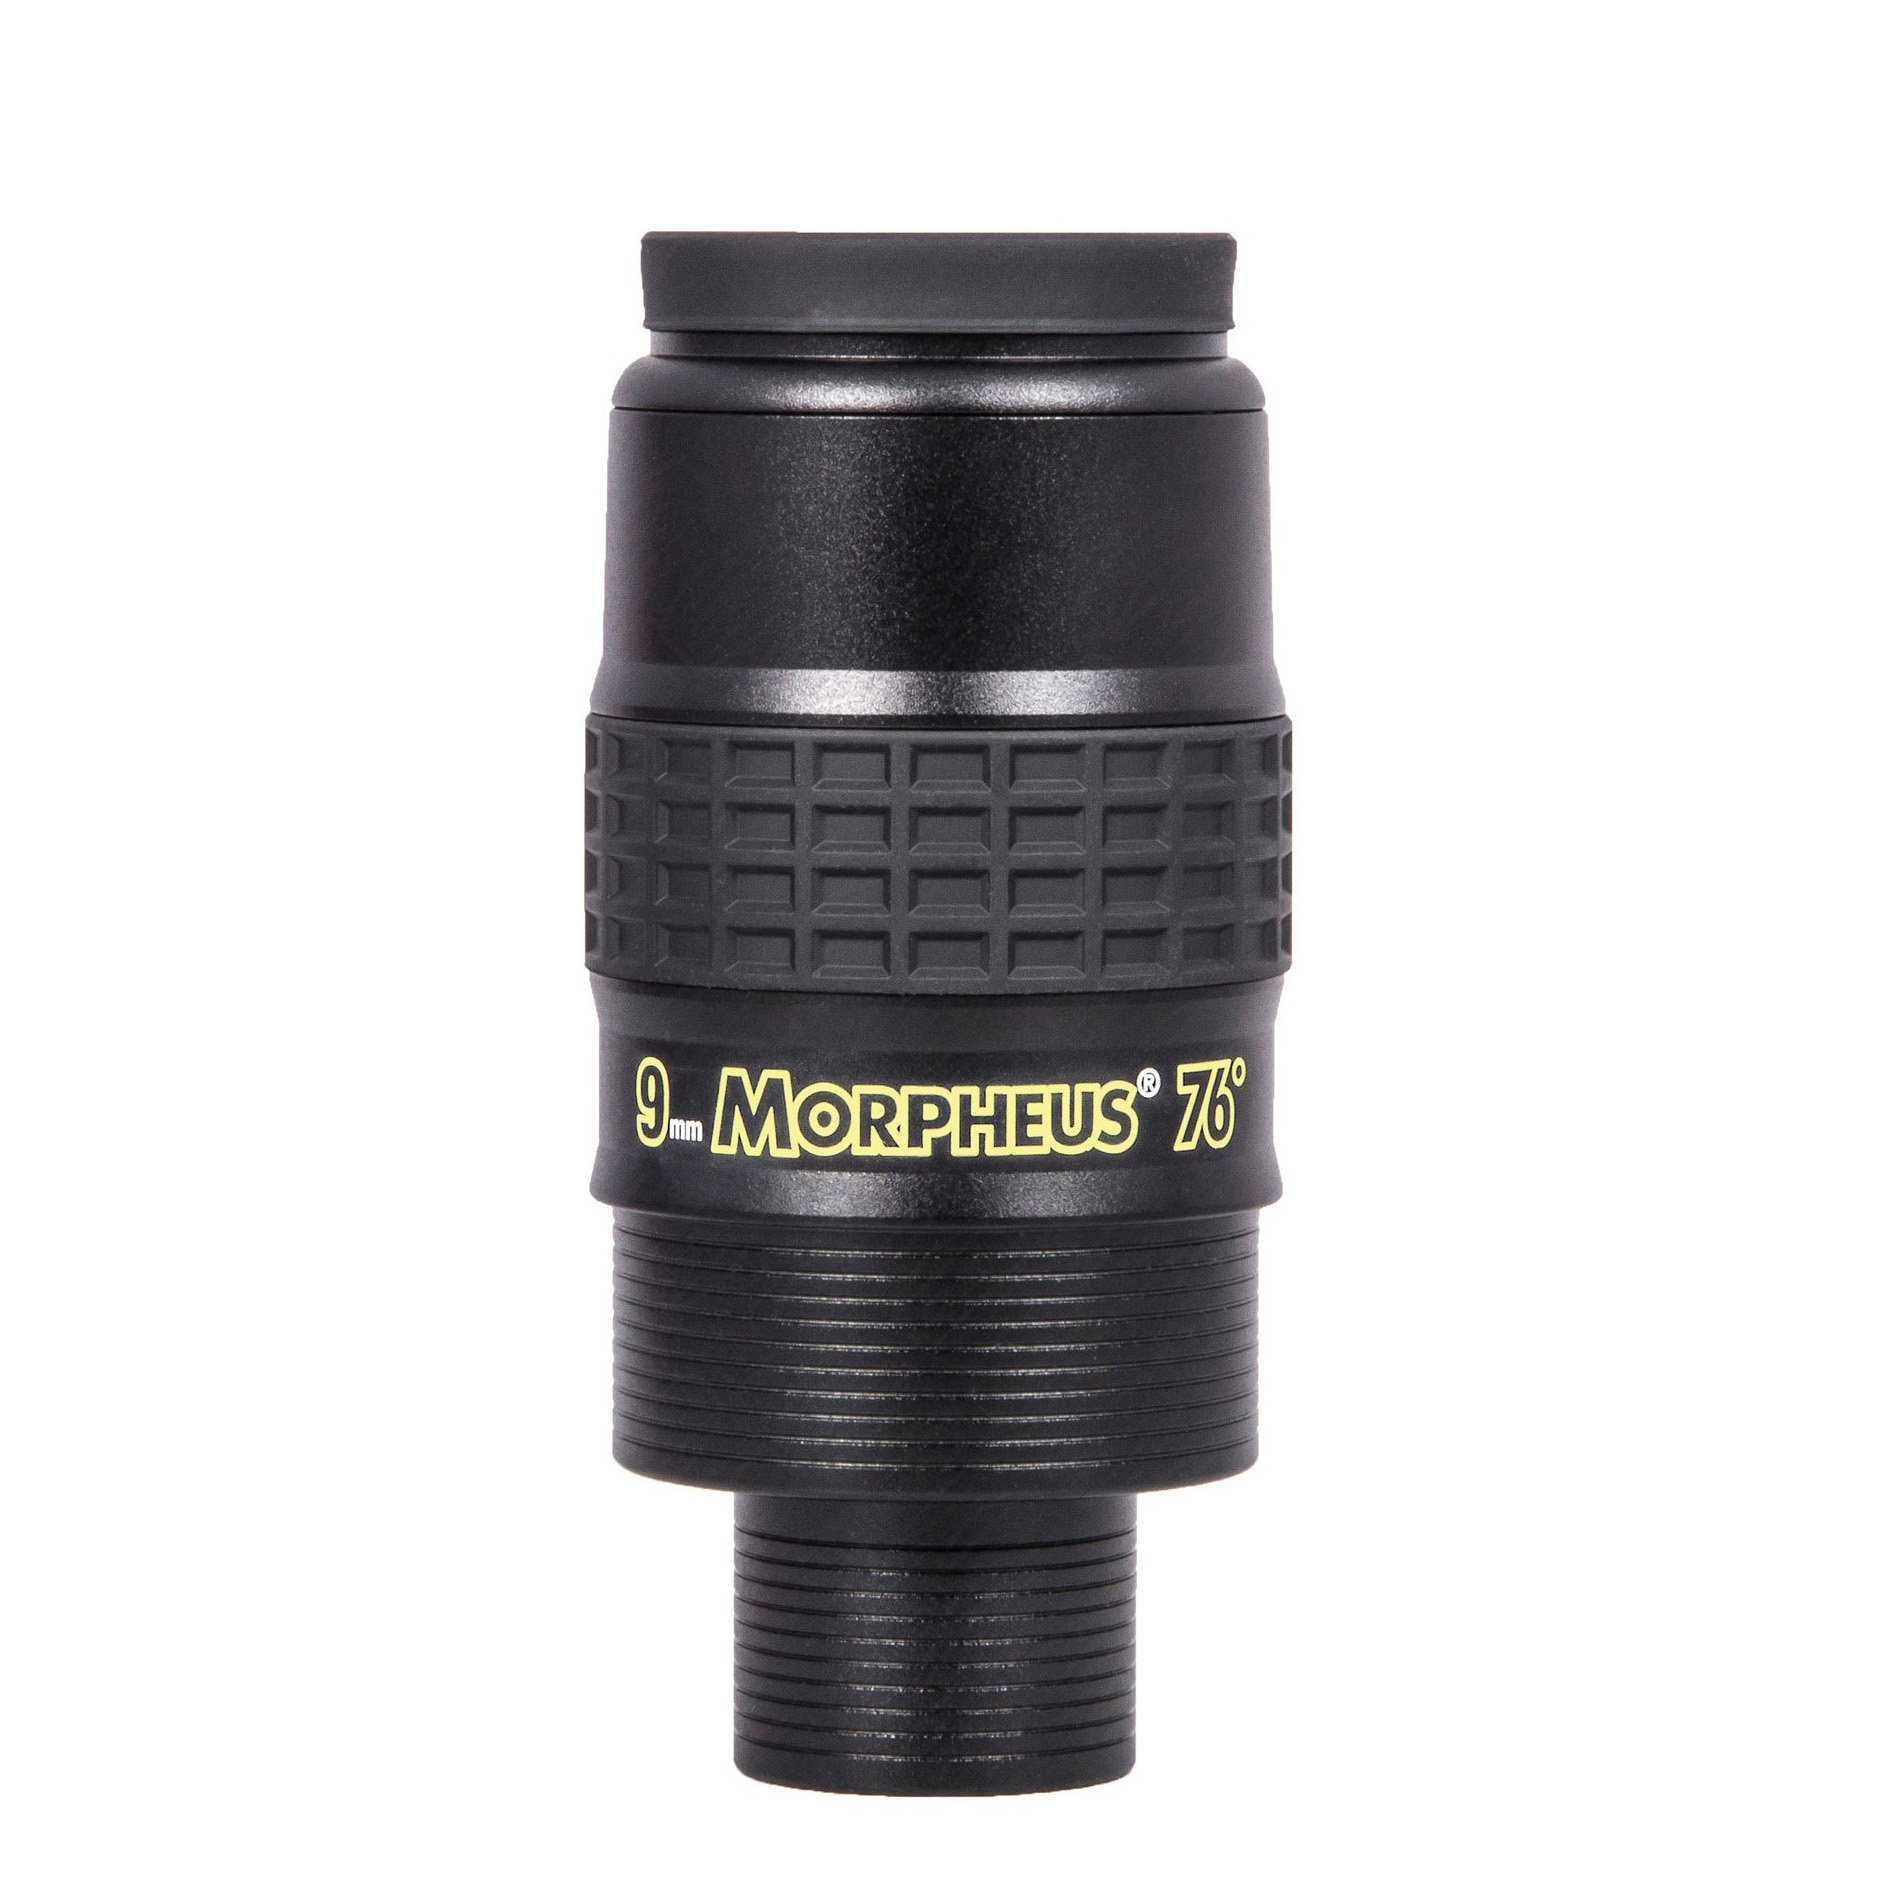 """Baader Planetarium 1.25"""" and 2"""" 9mm Morpheus Wide-Field Eyepiece for Astronomy Telescopes #  2954209"""